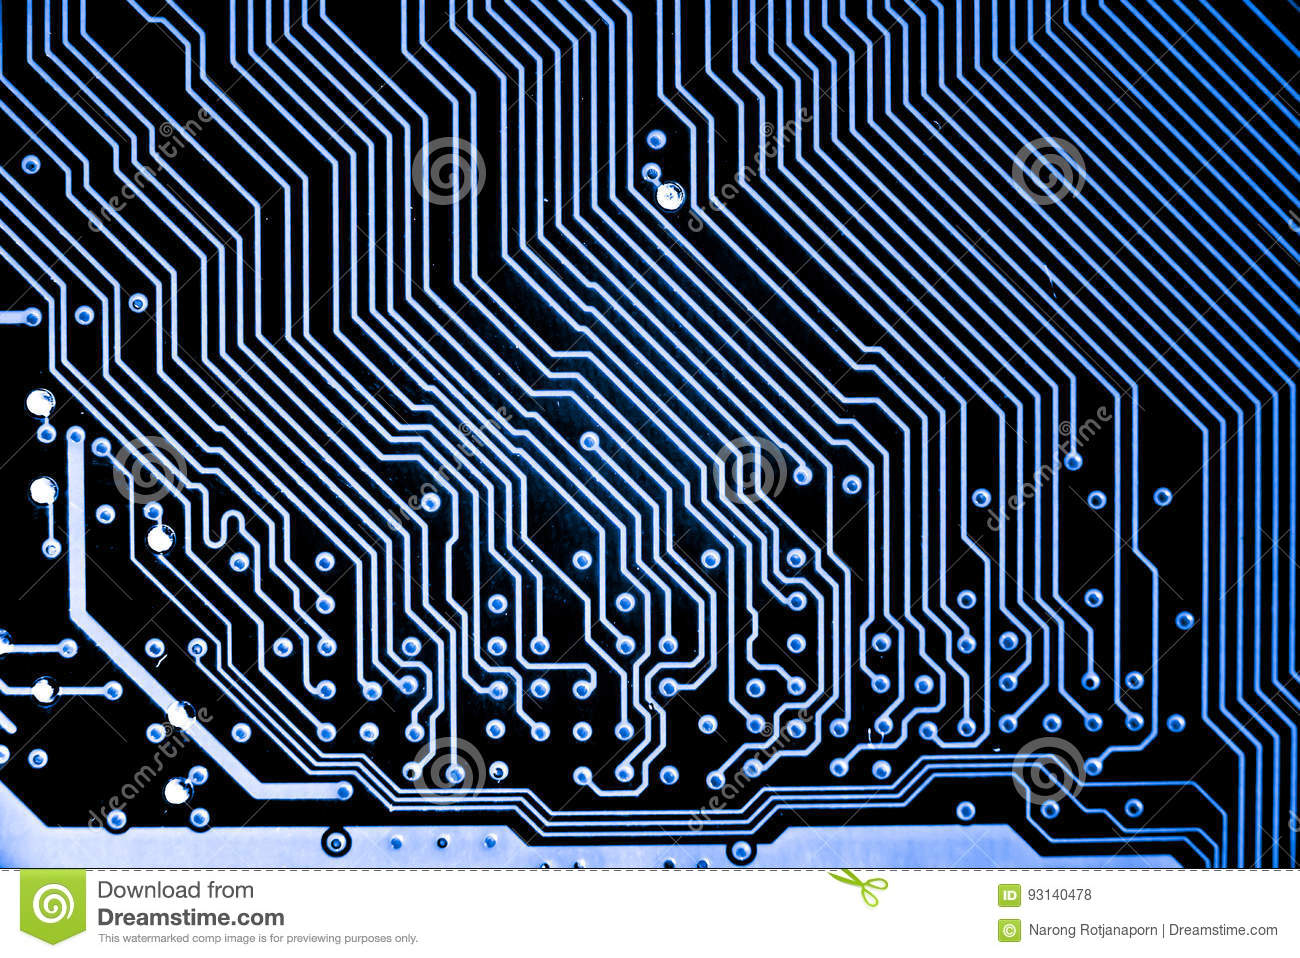 circuitry definition of circuitry by merriamwebster - HD1300×958